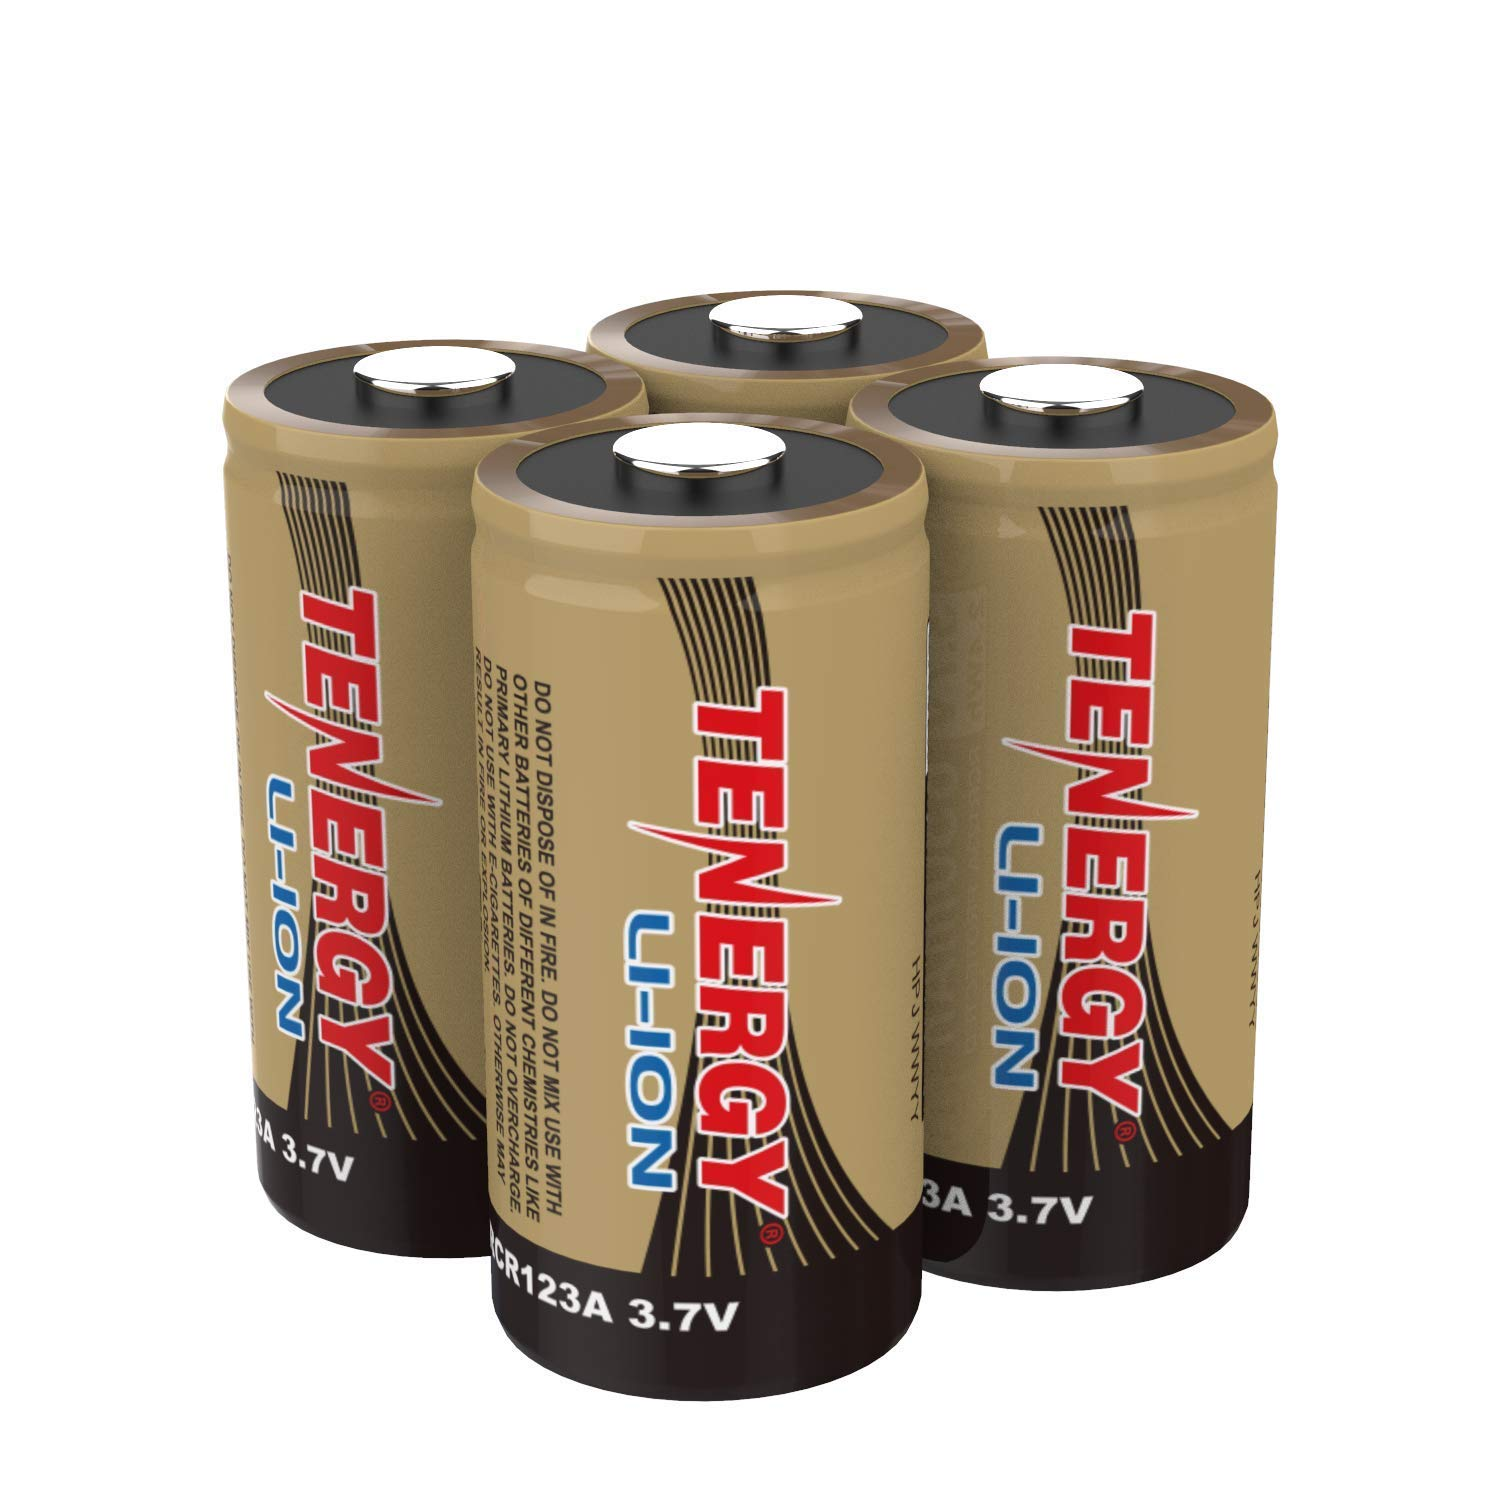 71HzbV1qqrL. SL1500  - 5 Best Batteries for Arlo Camers w/ Buying Guide